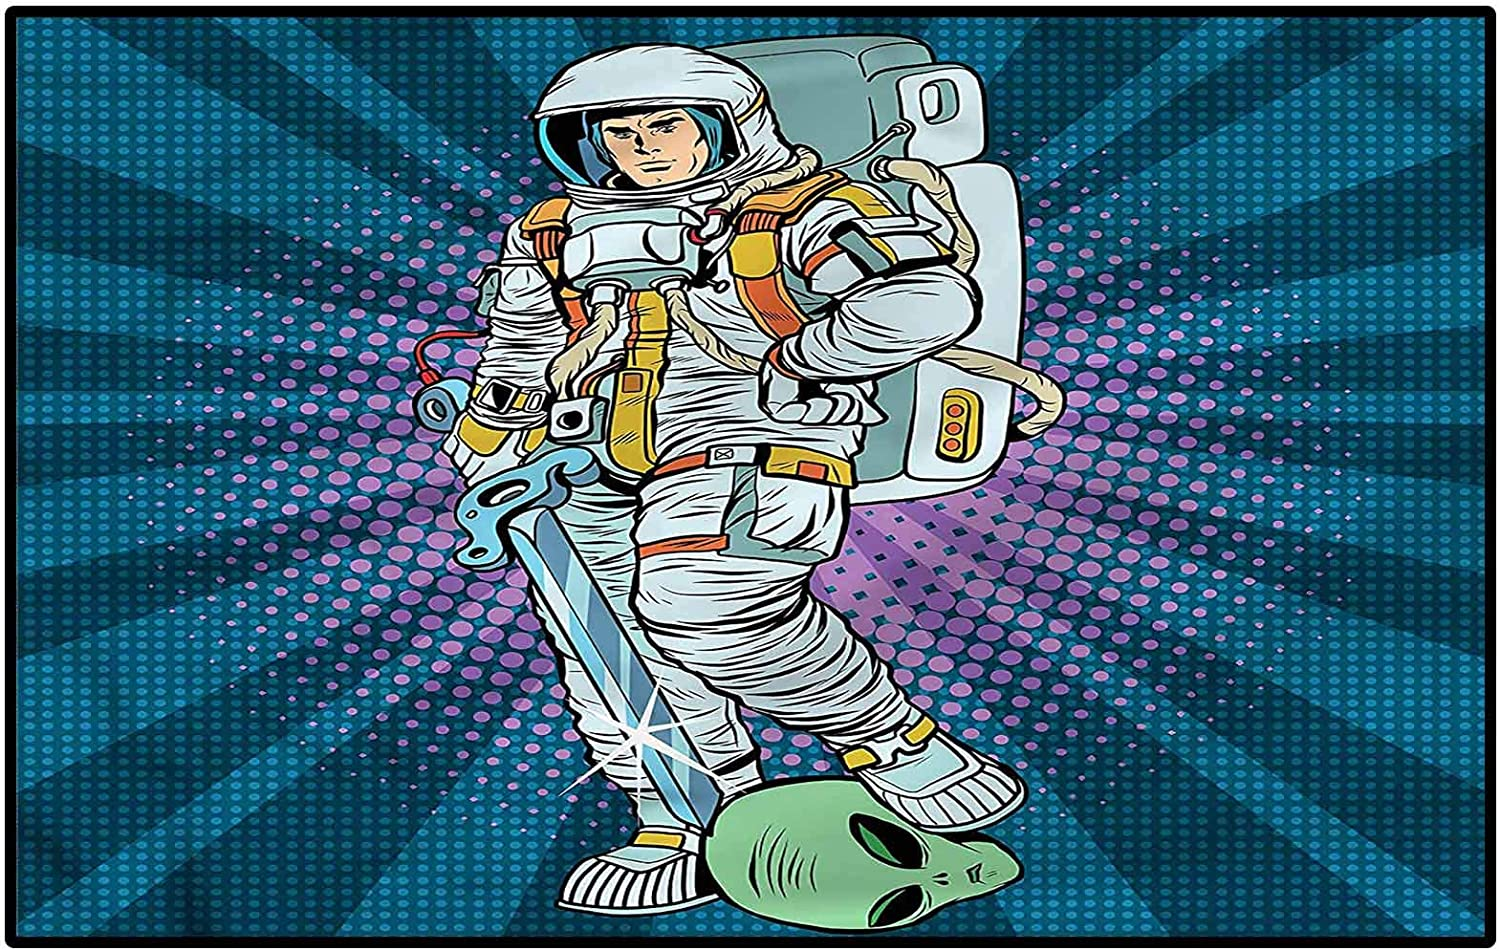 Astronaut Small Rugs playroom Rug Gorgeous Stair Galaxy Figure tre Import Design